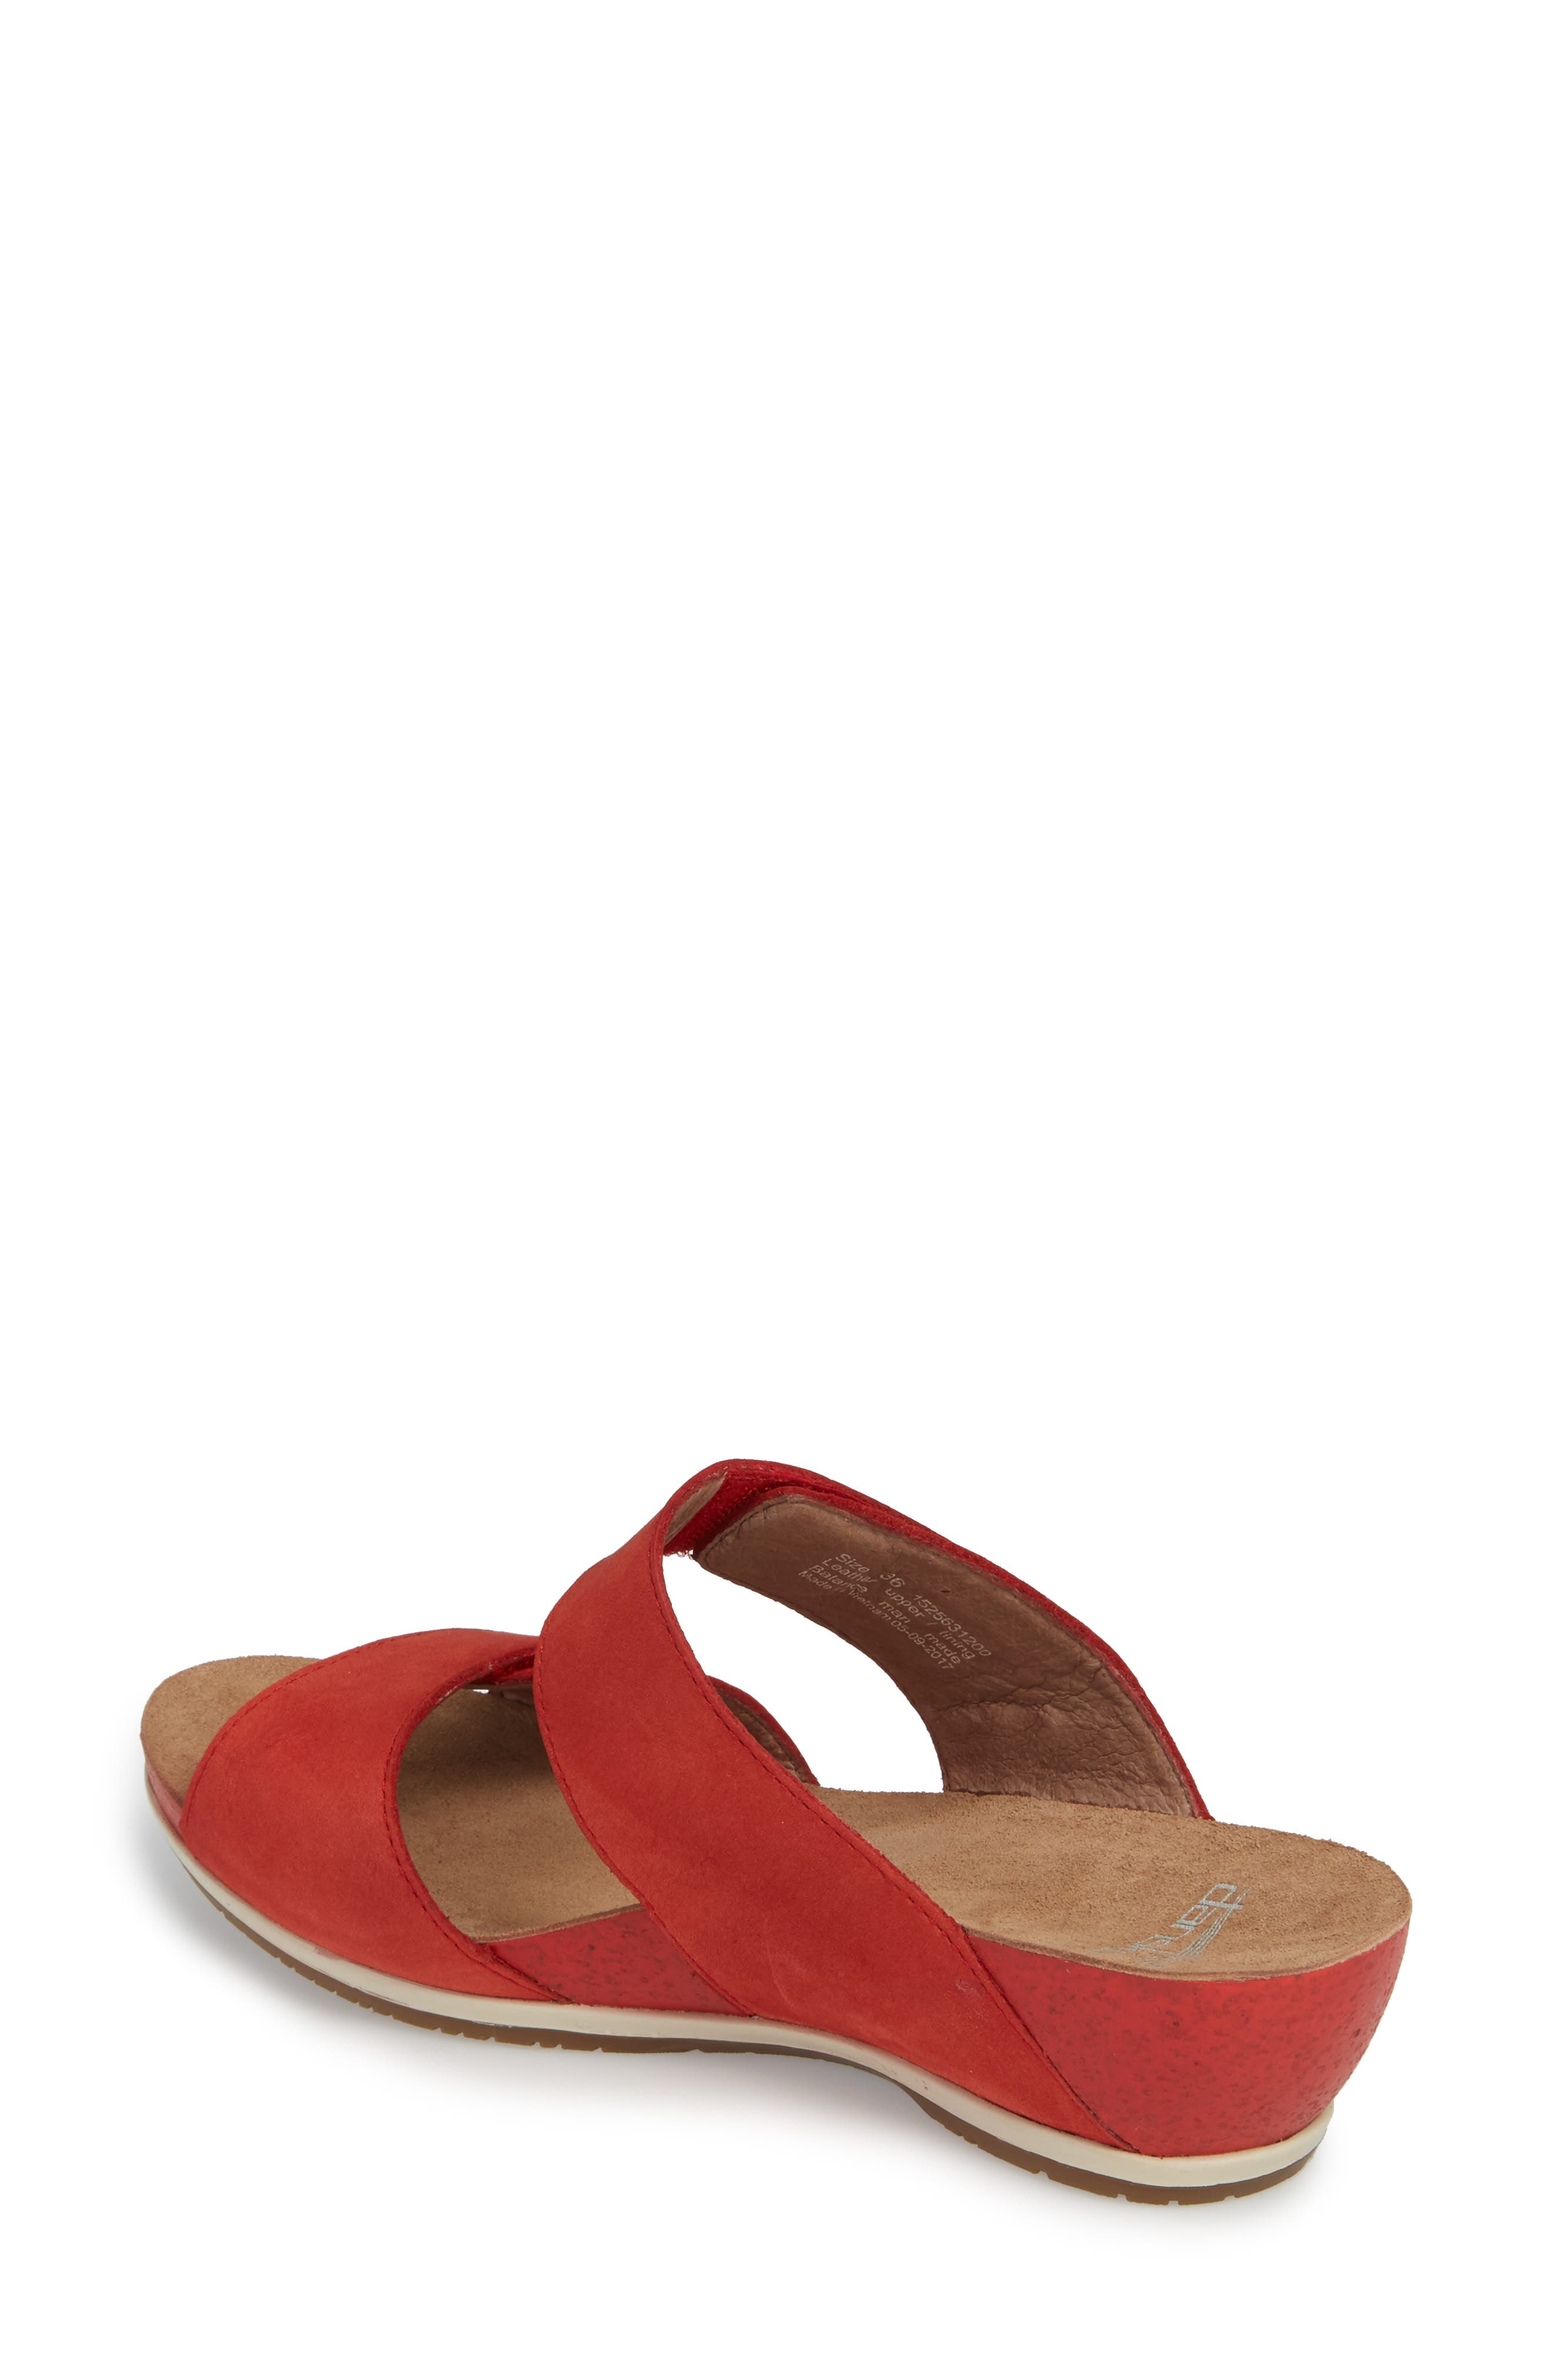 Vienna Slide Sandal,                             Alternate thumbnail 9, color,